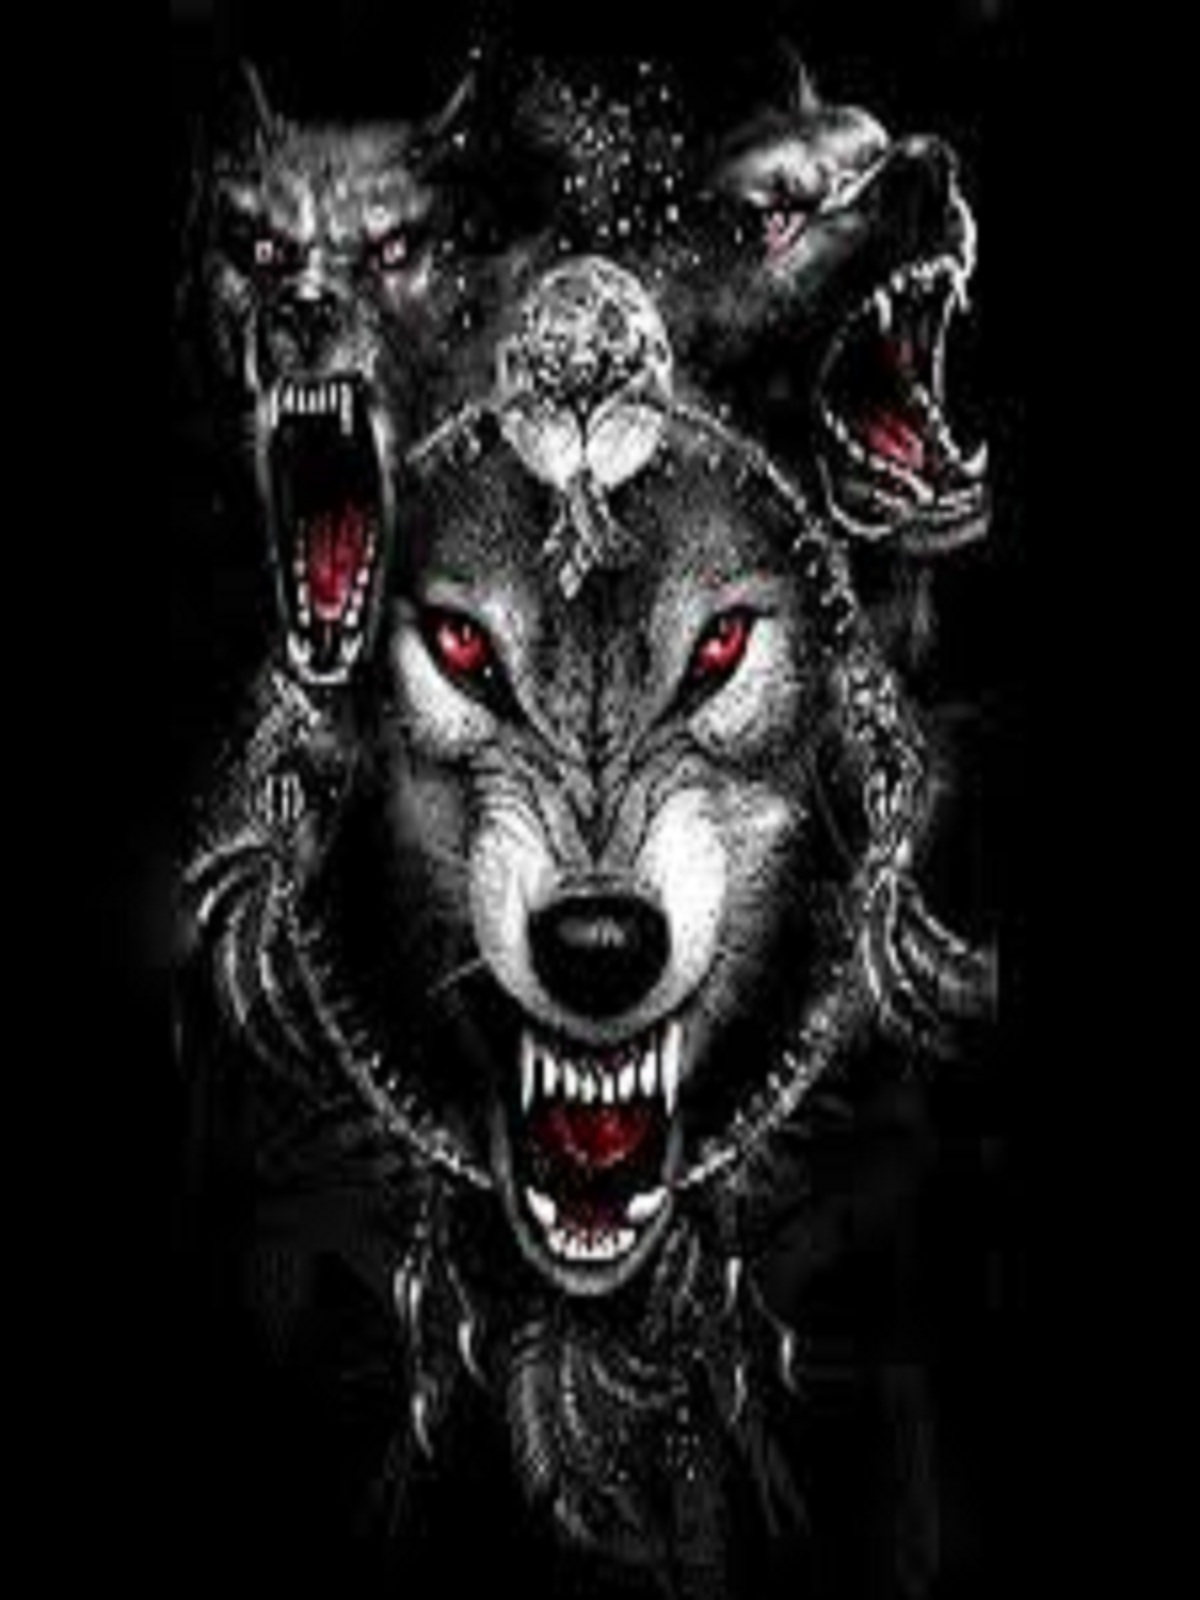 Wallpaper Quotes Iphone 6 Plus Wolf Lovers Place Images Dark Wolves Hd Wallpaper And